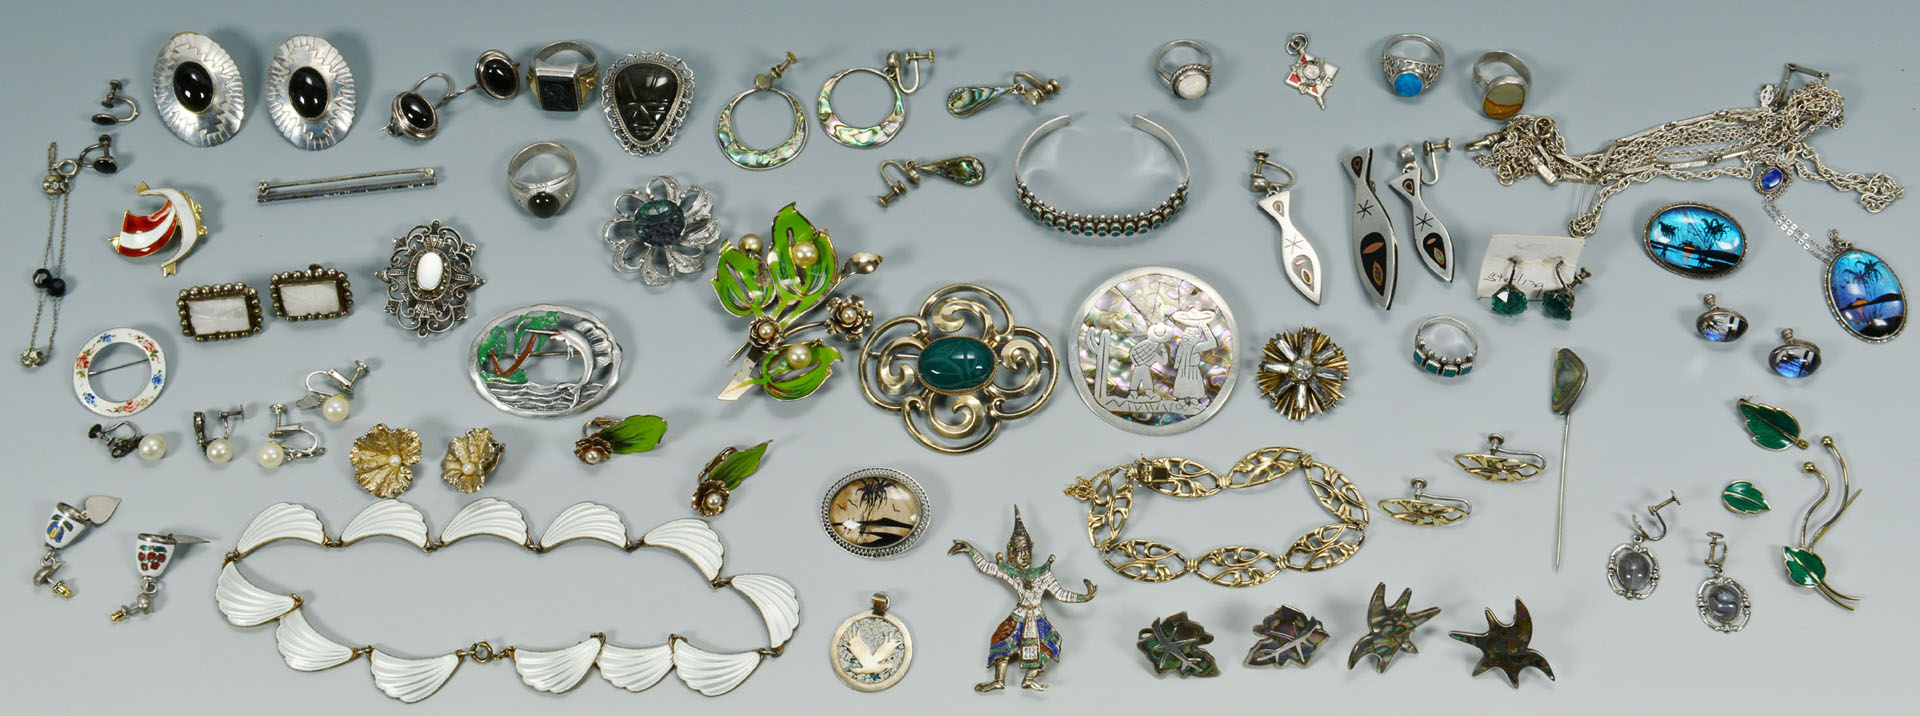 Lot 746: Large lot of silver jewelry with enamel and stones